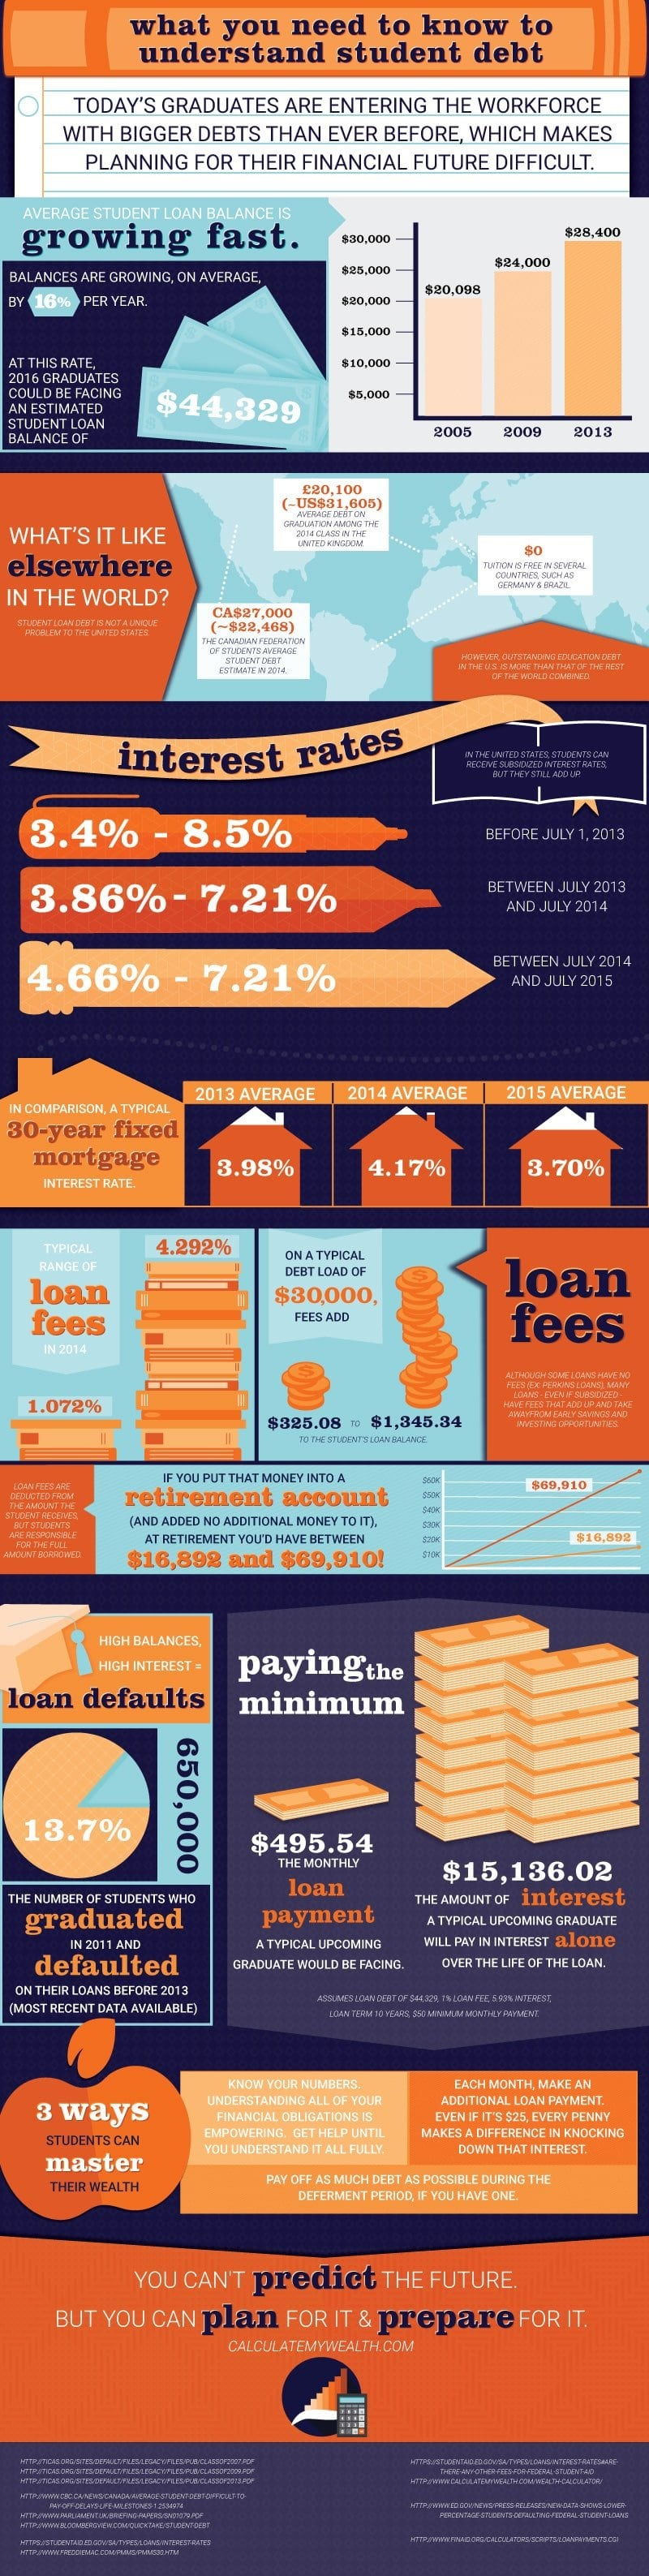 Calculate my Wealth Infographic   Lindsay Goldner - No Fonts Given Co